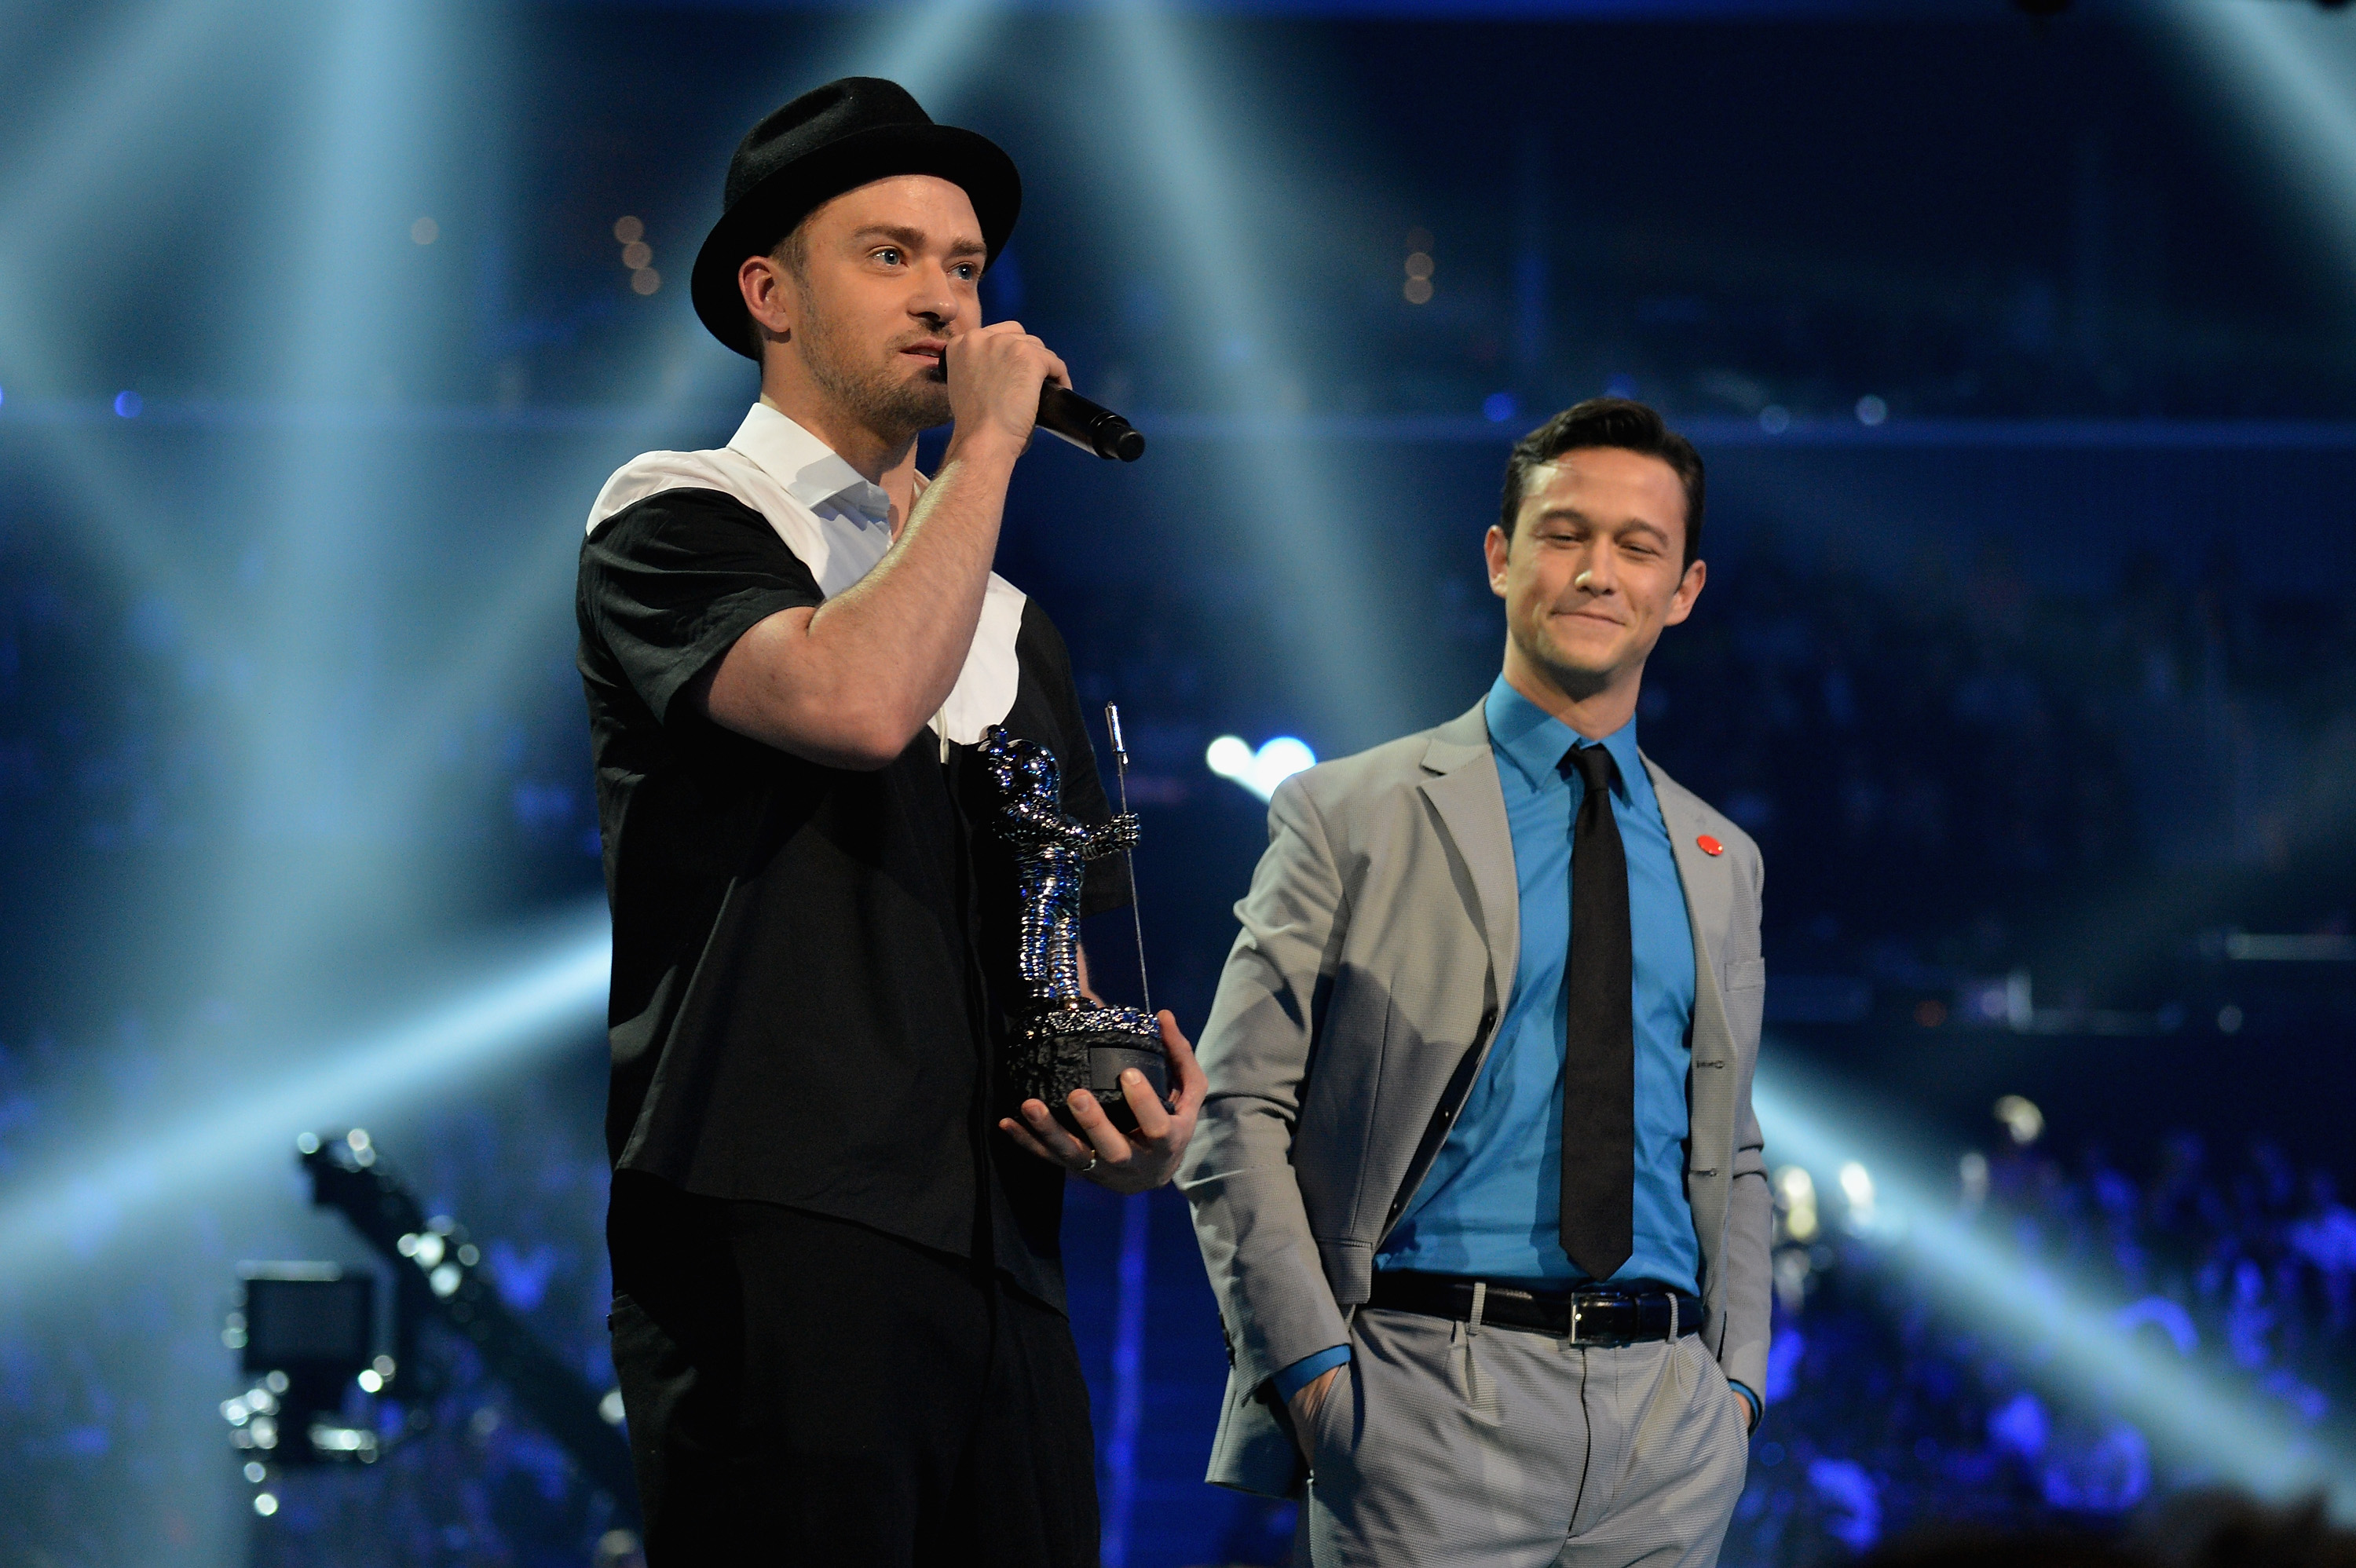 Justin Timberlake receives the award for Best Video from Joseph Gordon-Levitt (Getty Images)